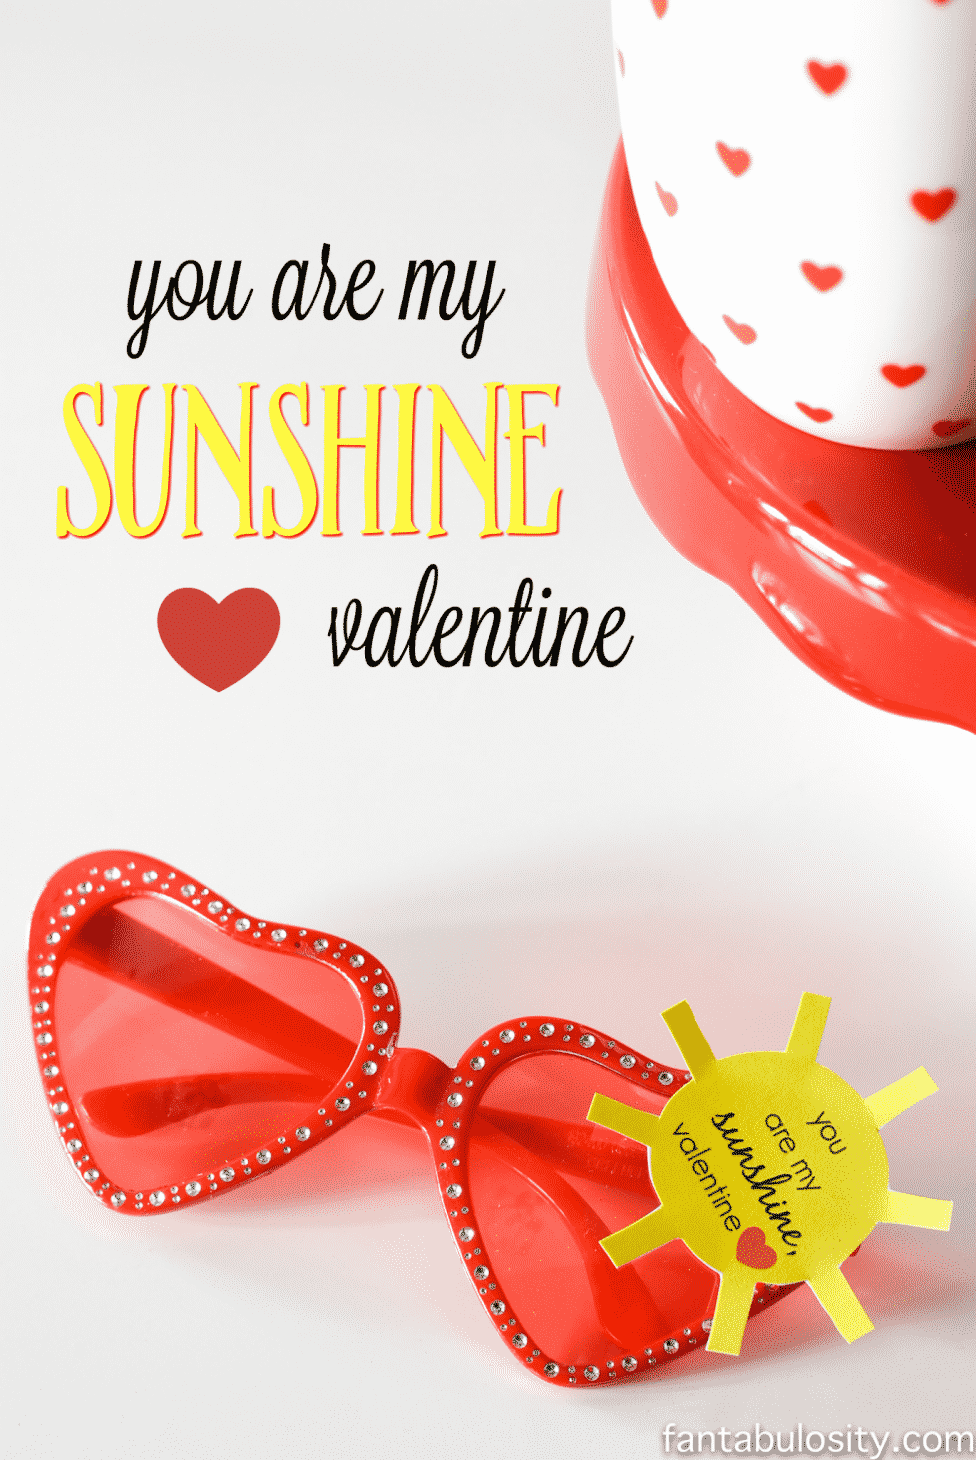 classroom valentines with free printable you are my sunshine valentine heart sunglasses - Valentines Pictures Free